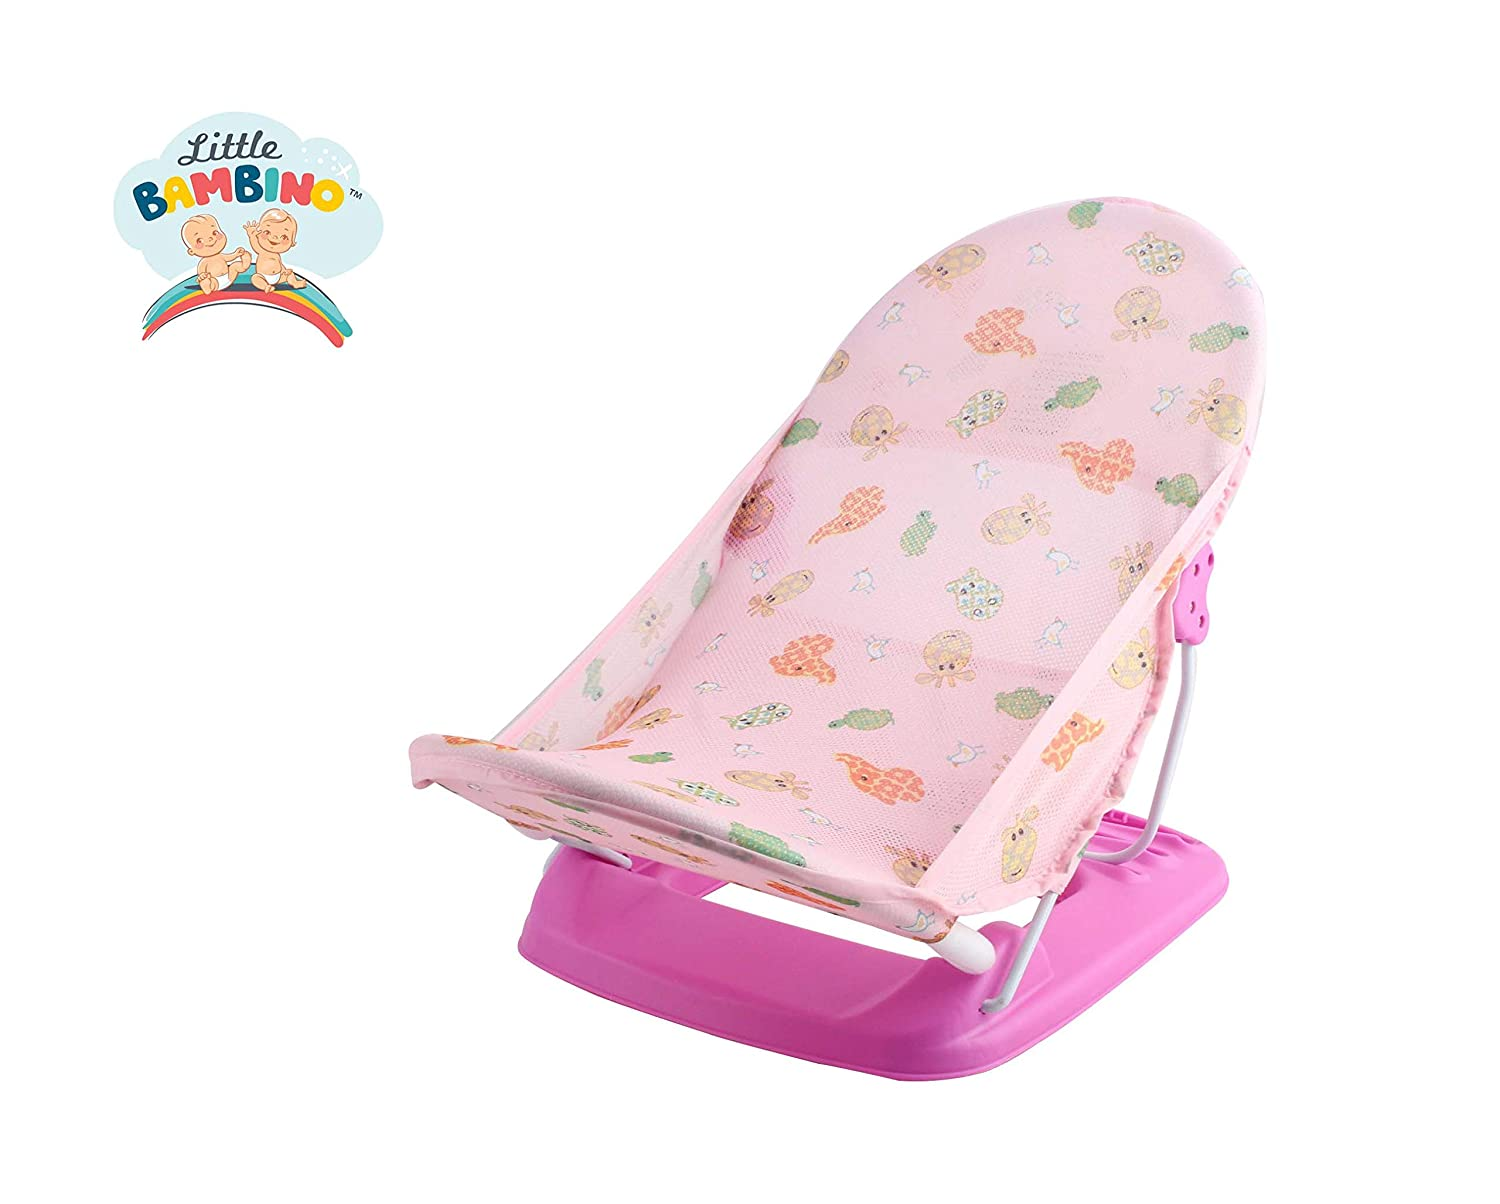 Little Bambino Bath Chair Pink Infant Deluxe Baby Bather Bath Chair